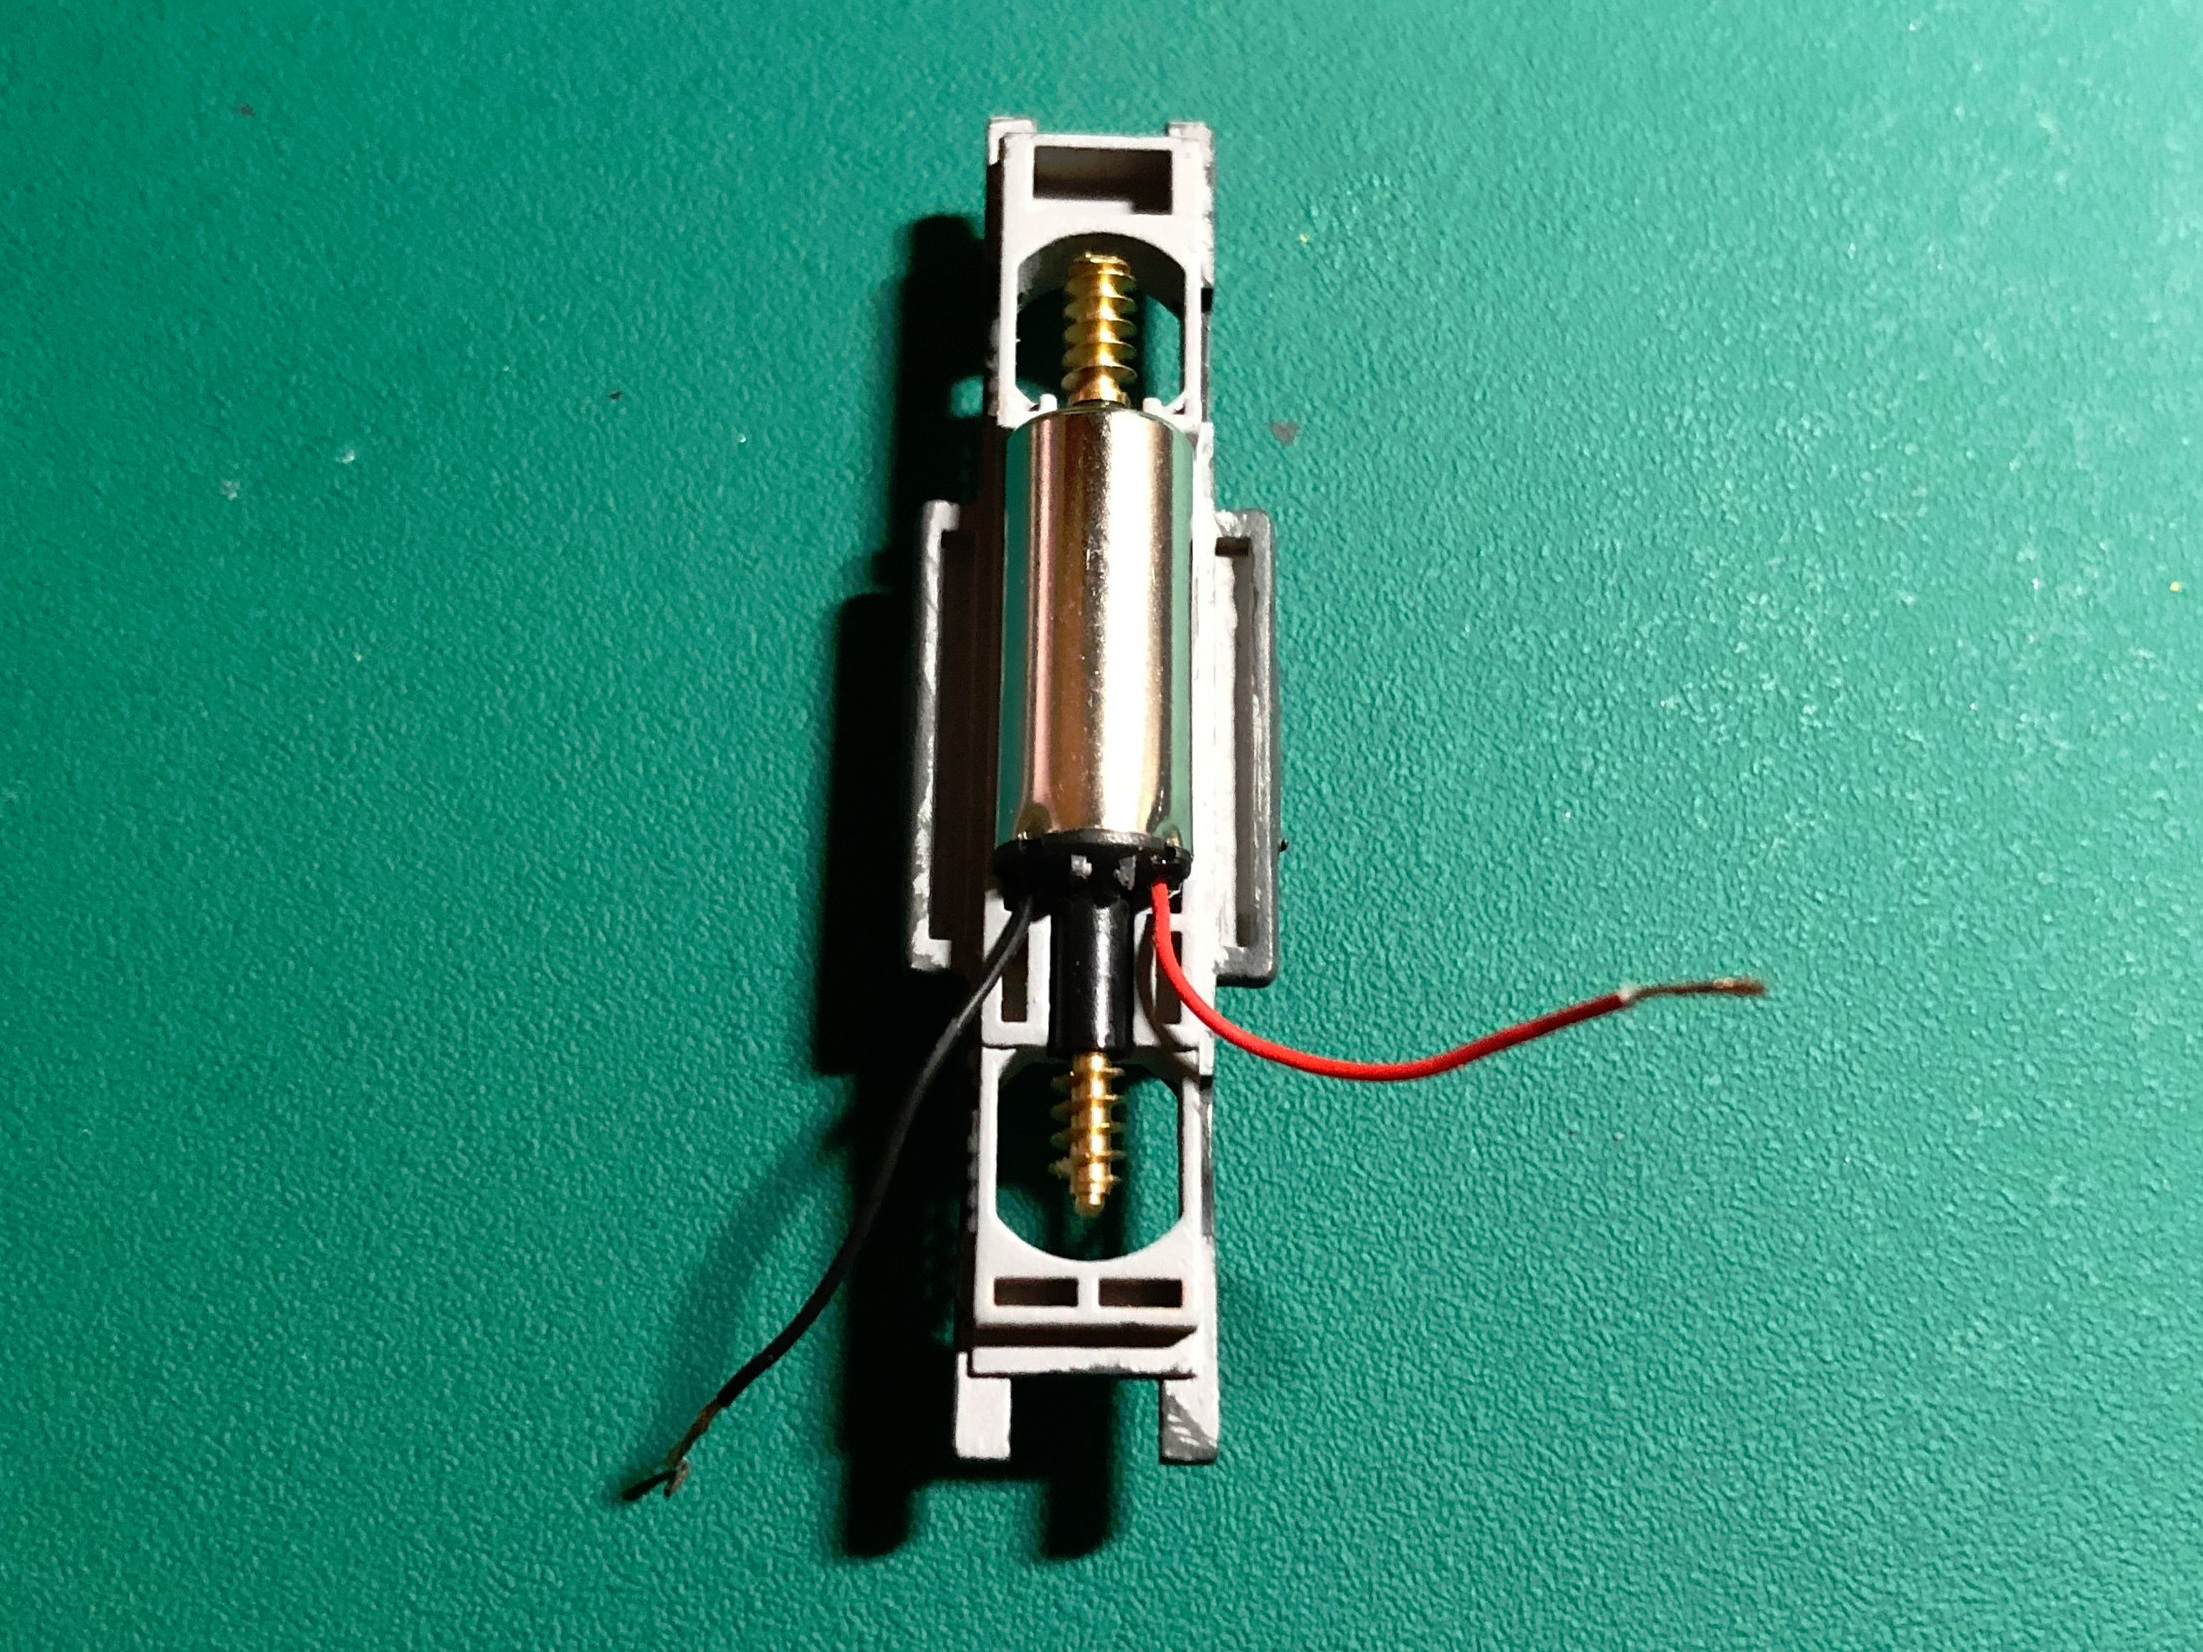 Step 20 - Insert the motor into the bottom frame. Orient the motor so that the red wire is on the right side of the frame. Notice that the rear of the frame has two long beams protruding outward. The front of the frame has a single rectangular depression.